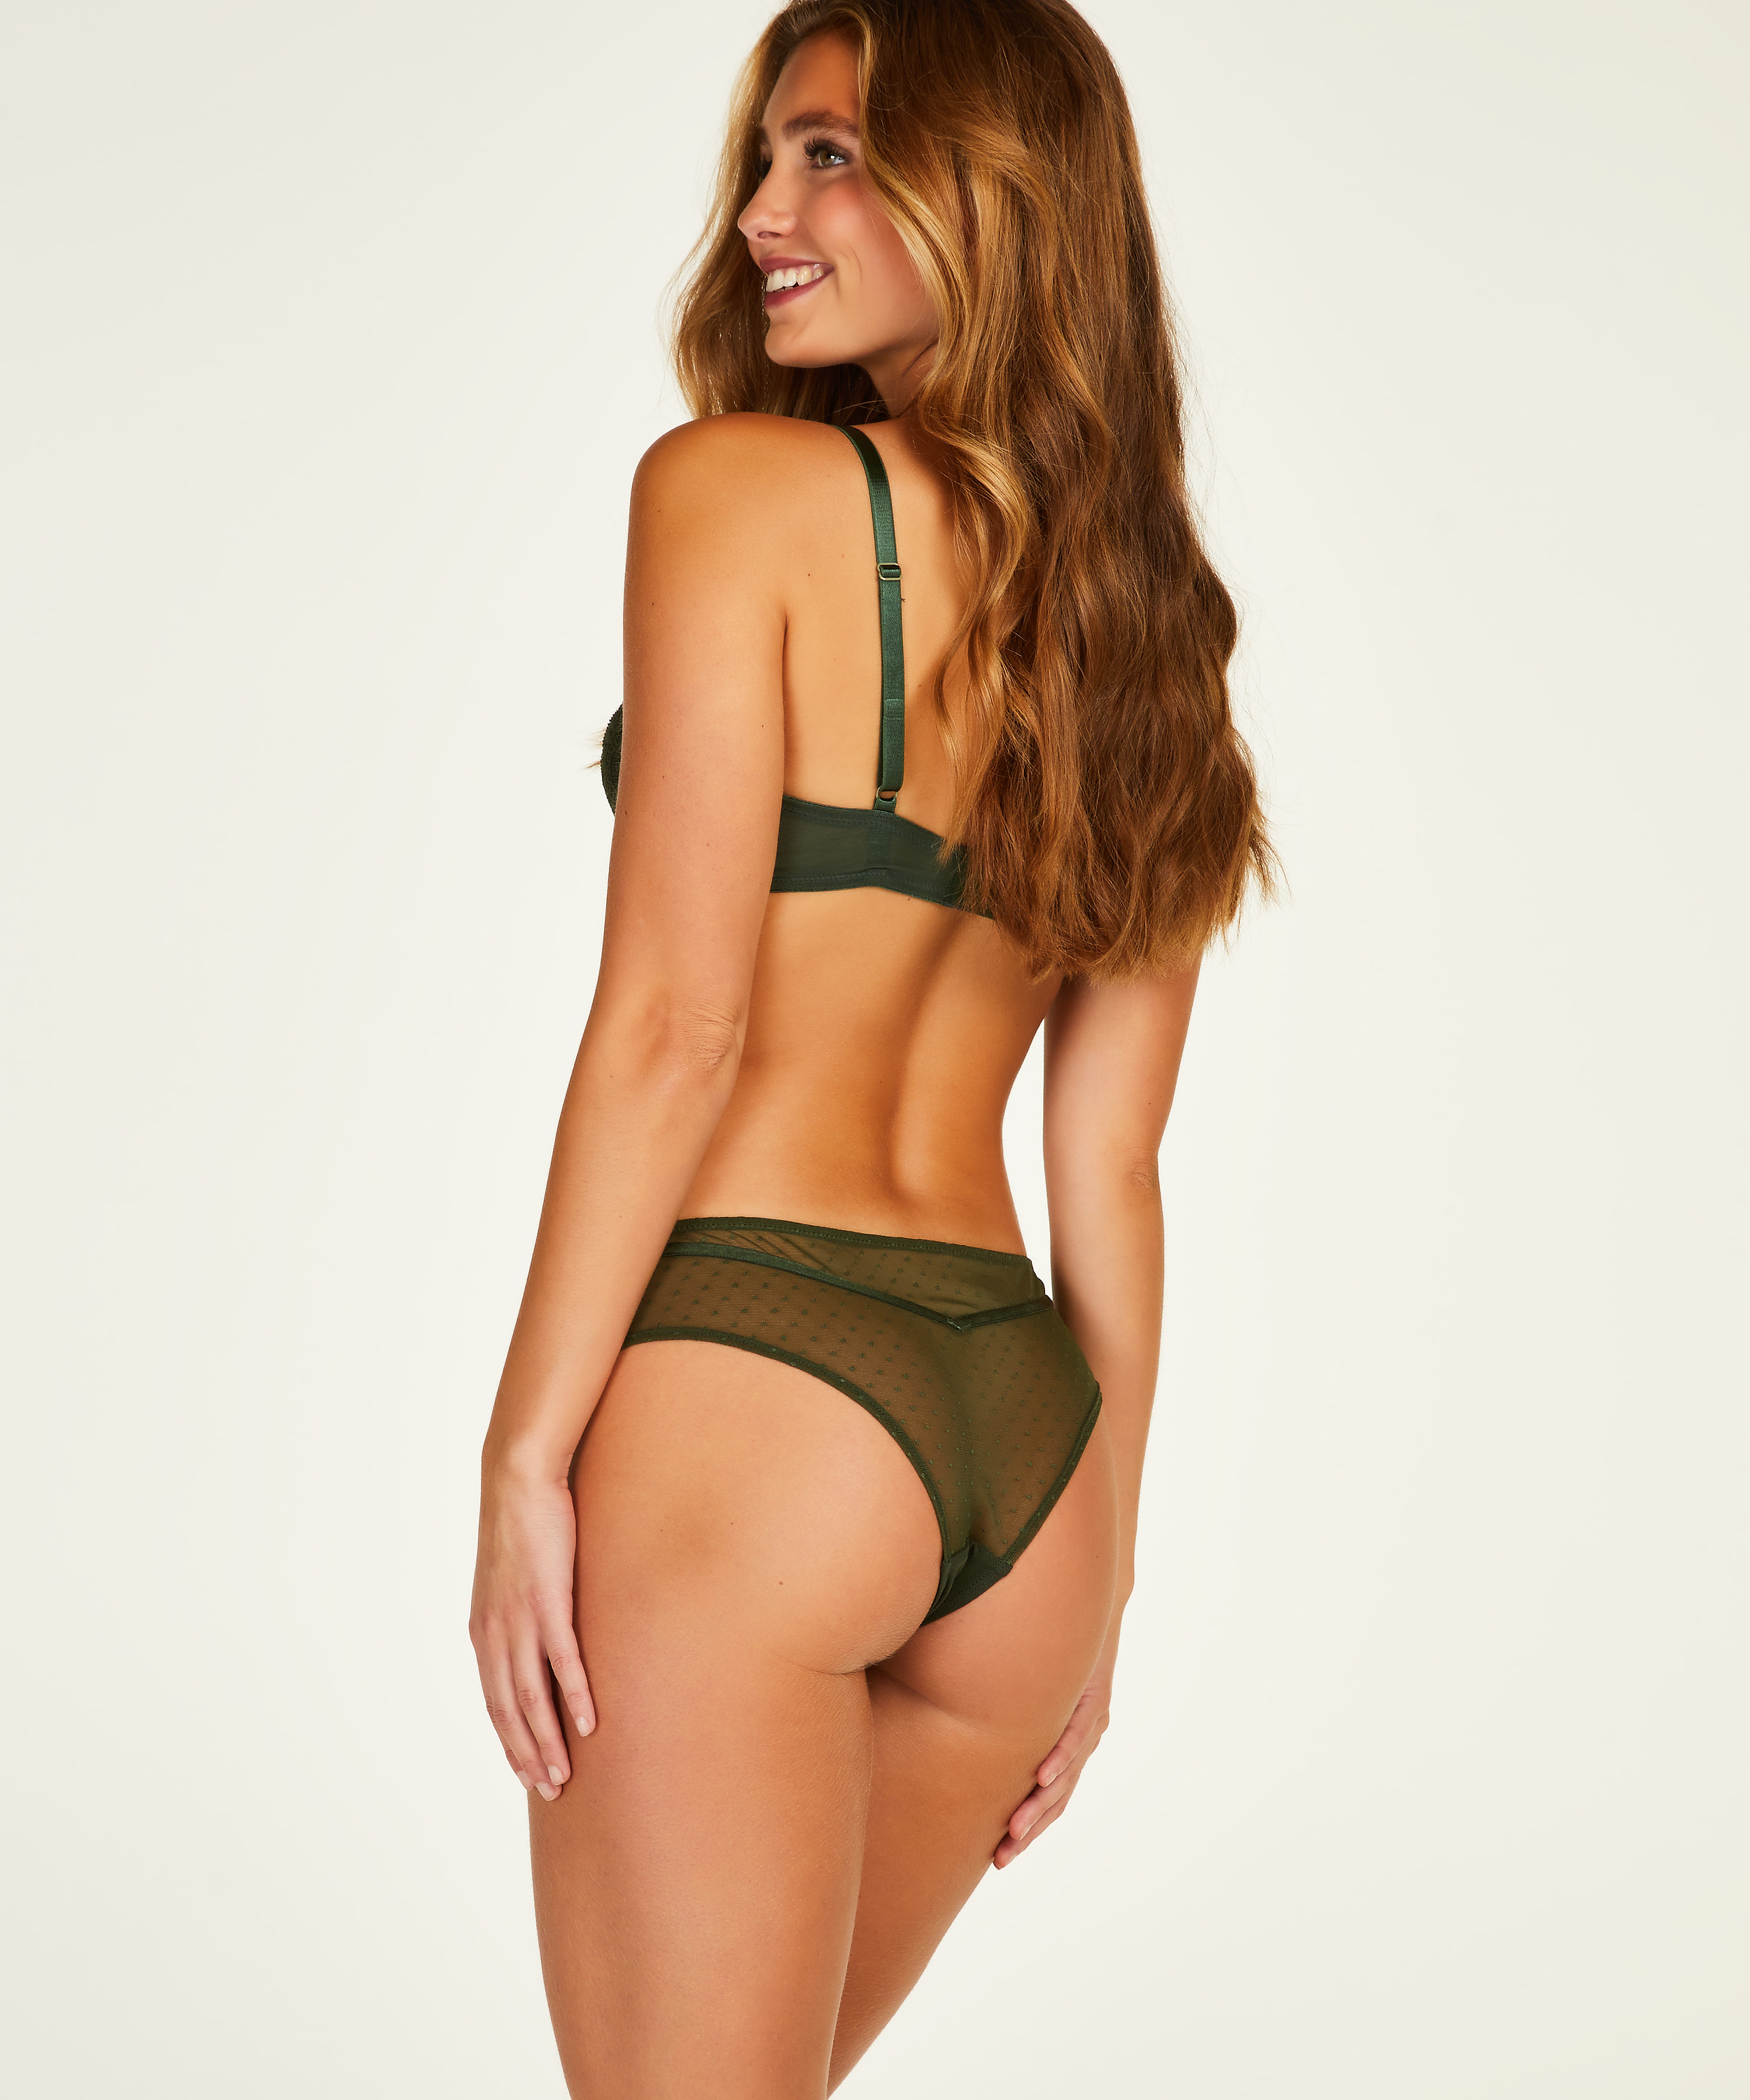 Kate Padded Non-Wired Bra, Green, main